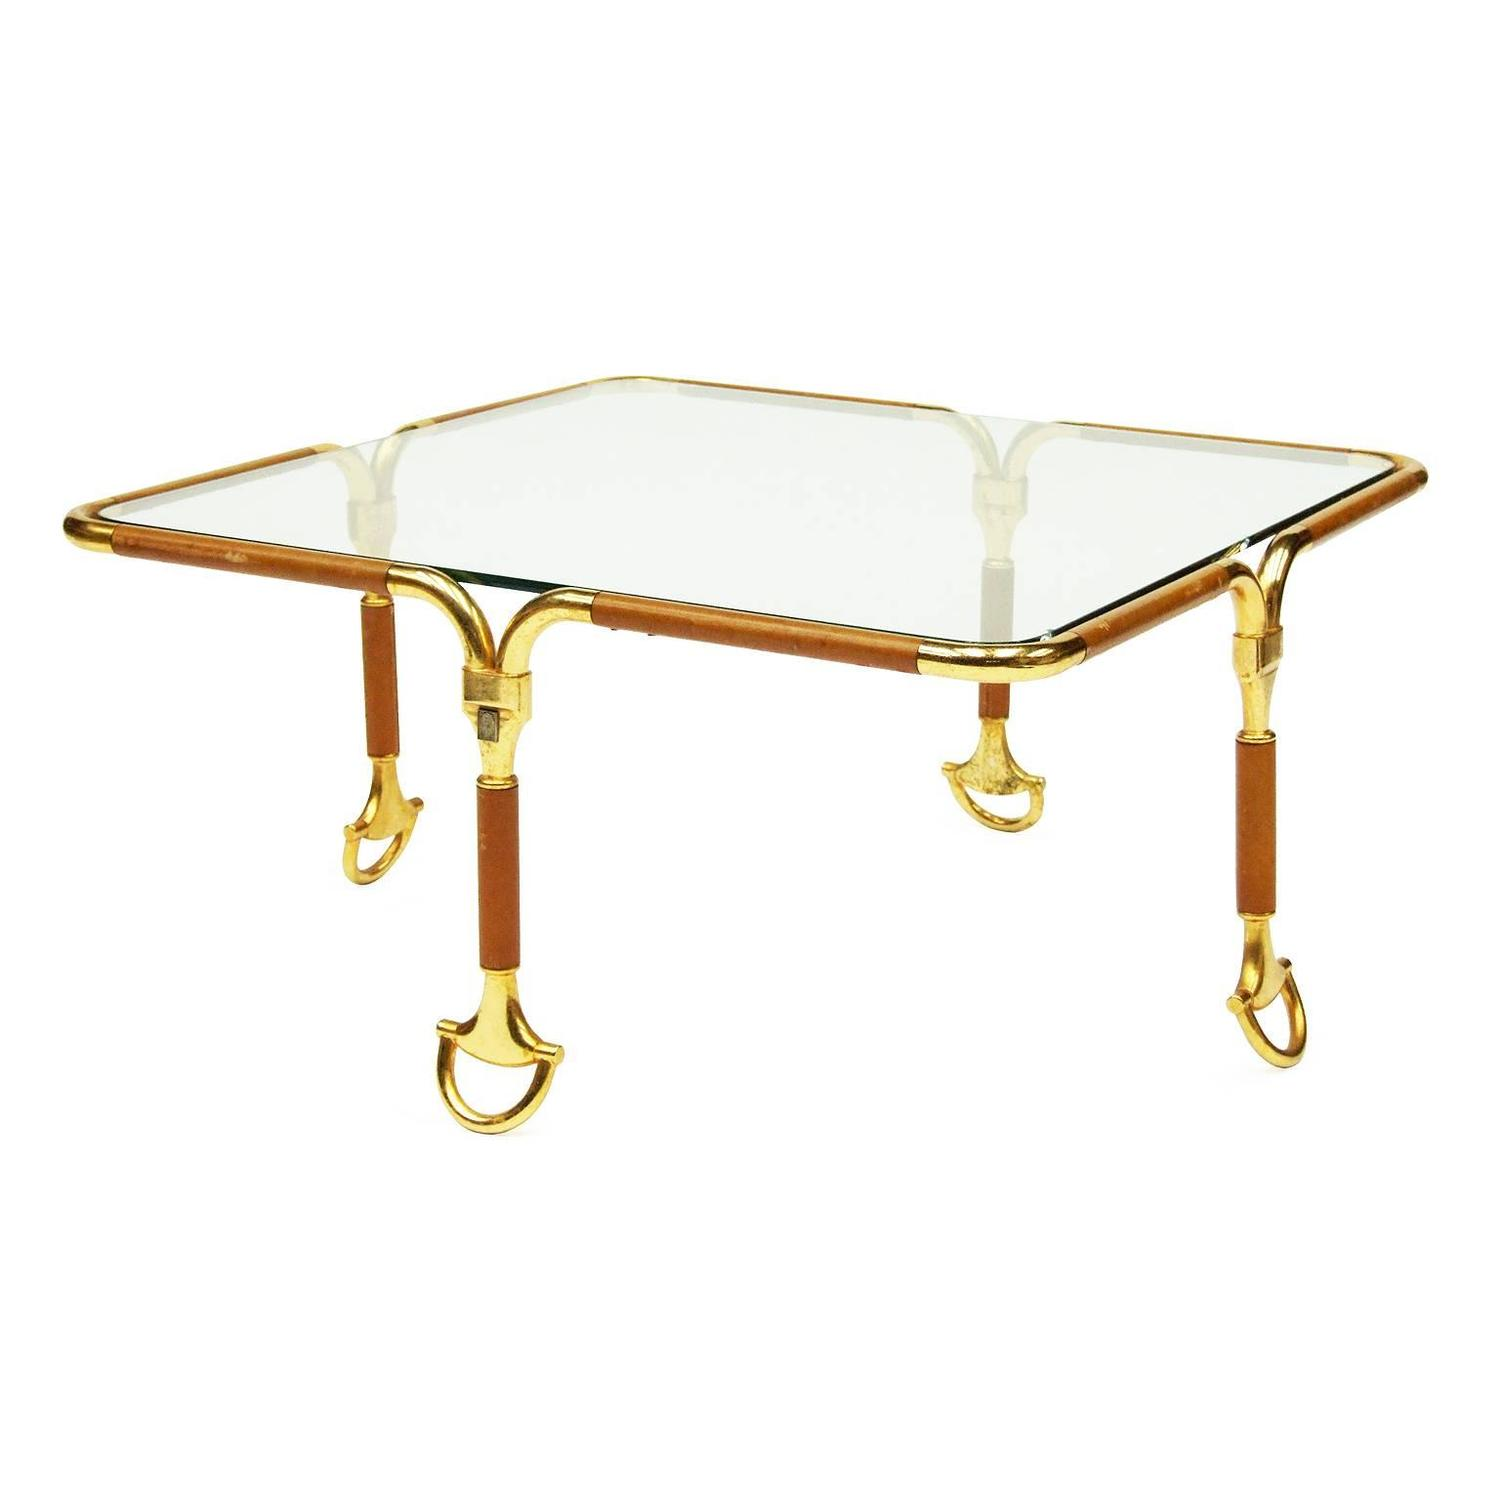 S Leather Gucci Table With Gold Stirrup Feet At Stdibs - Gucci coffee table